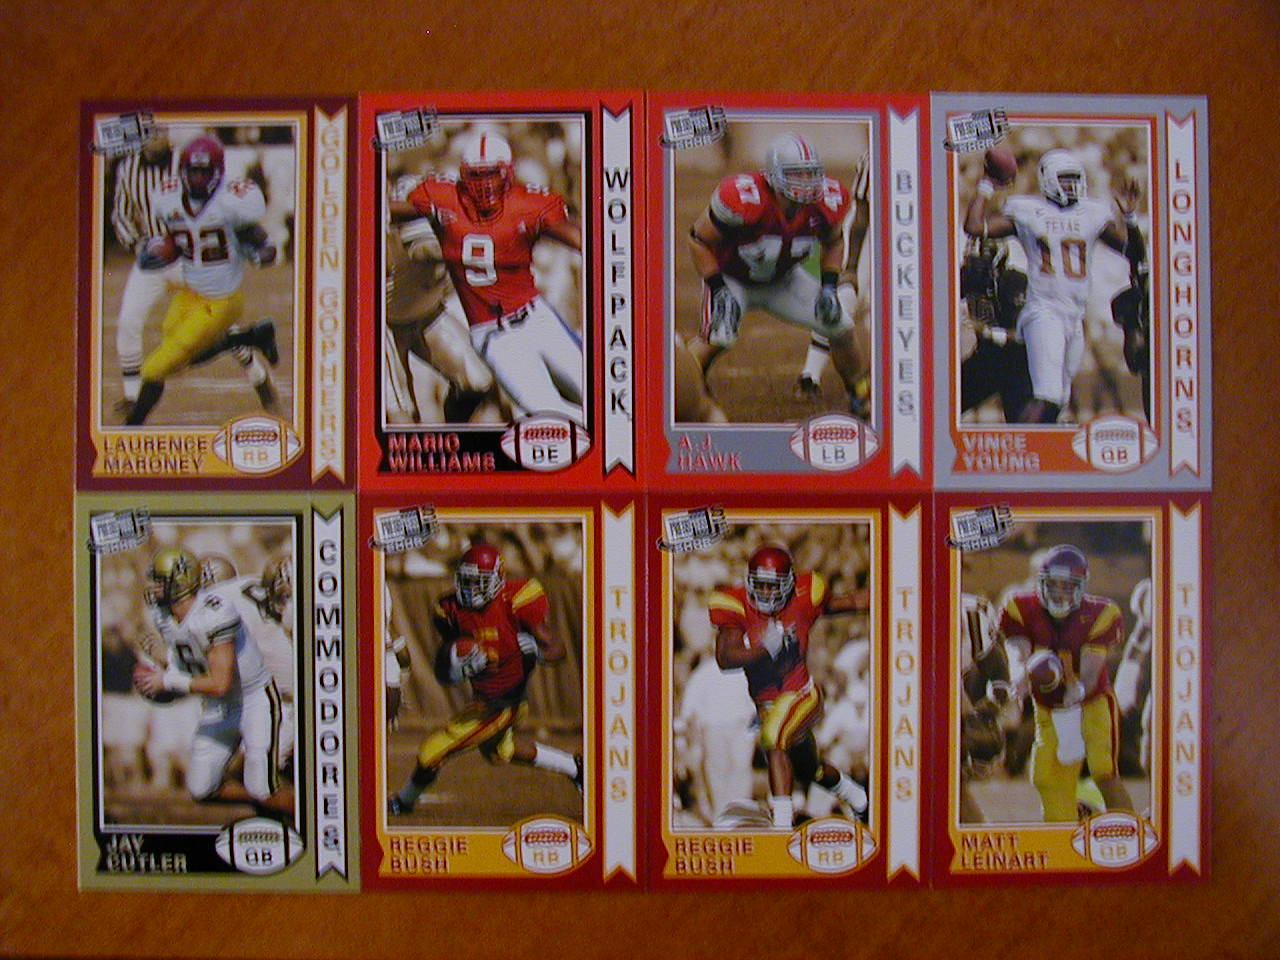 2006 Press Pass SE Old School Football 27 Card Insert Set